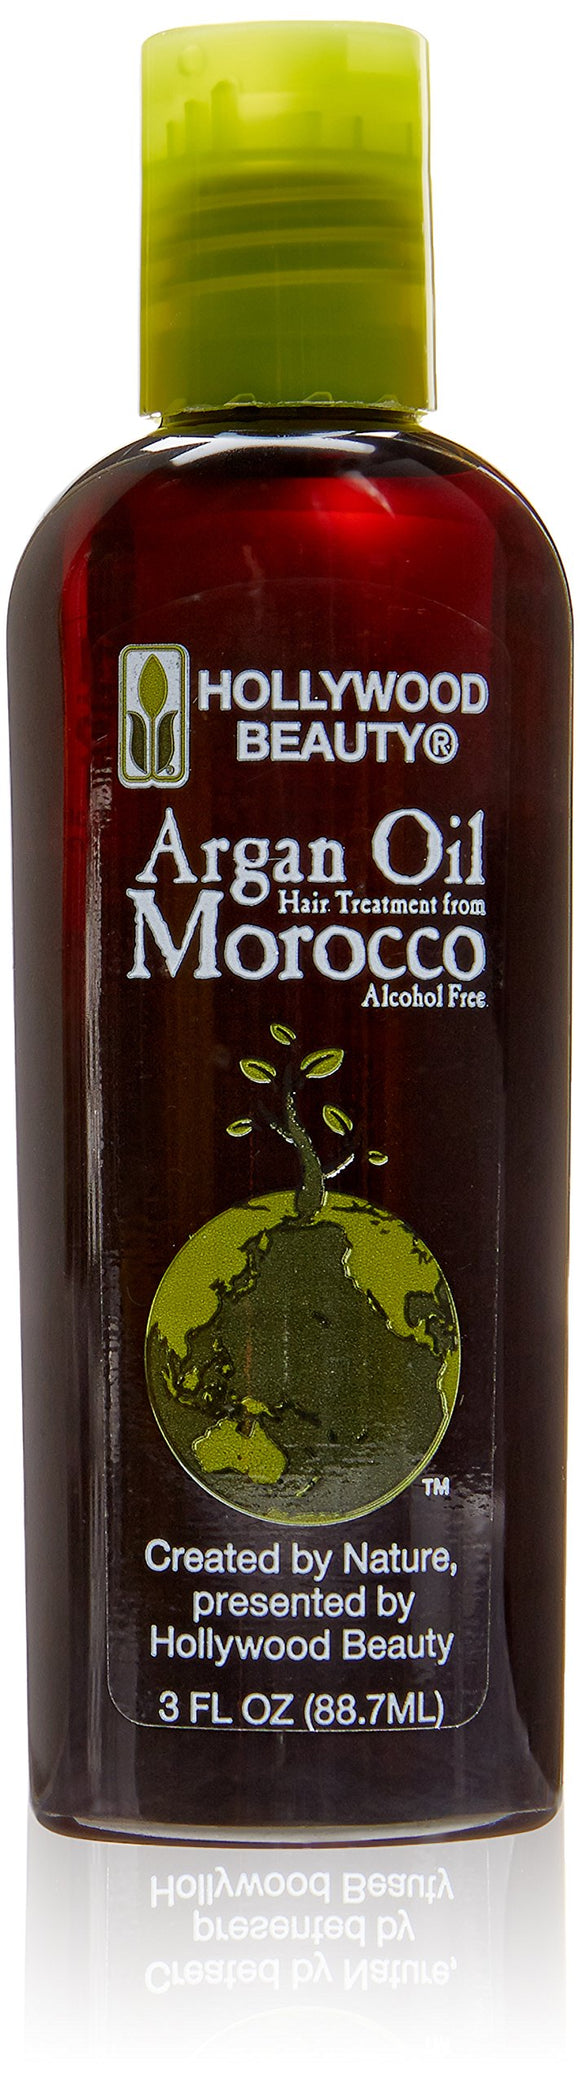 Hollywood Beauty Argan Oil Hair Treatment From Morocco Alcohol Free 3 Fl Oz